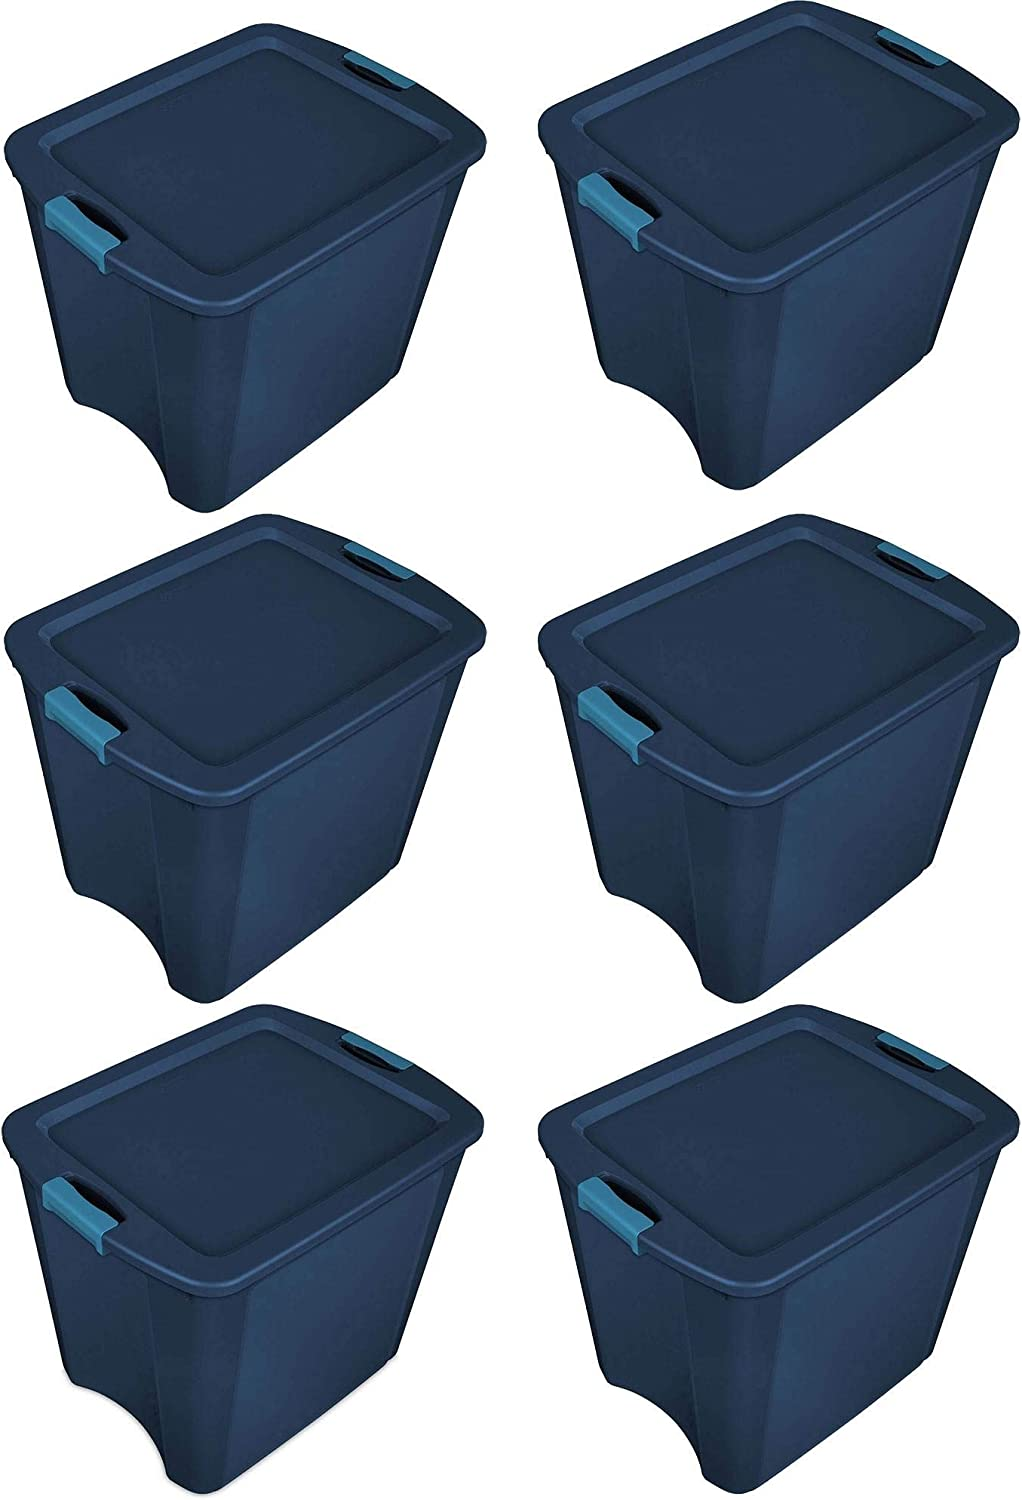 Sterilite 26 Gallon Latch and Carry Storage Tote, True Blue | 14487404 (6 Pack)